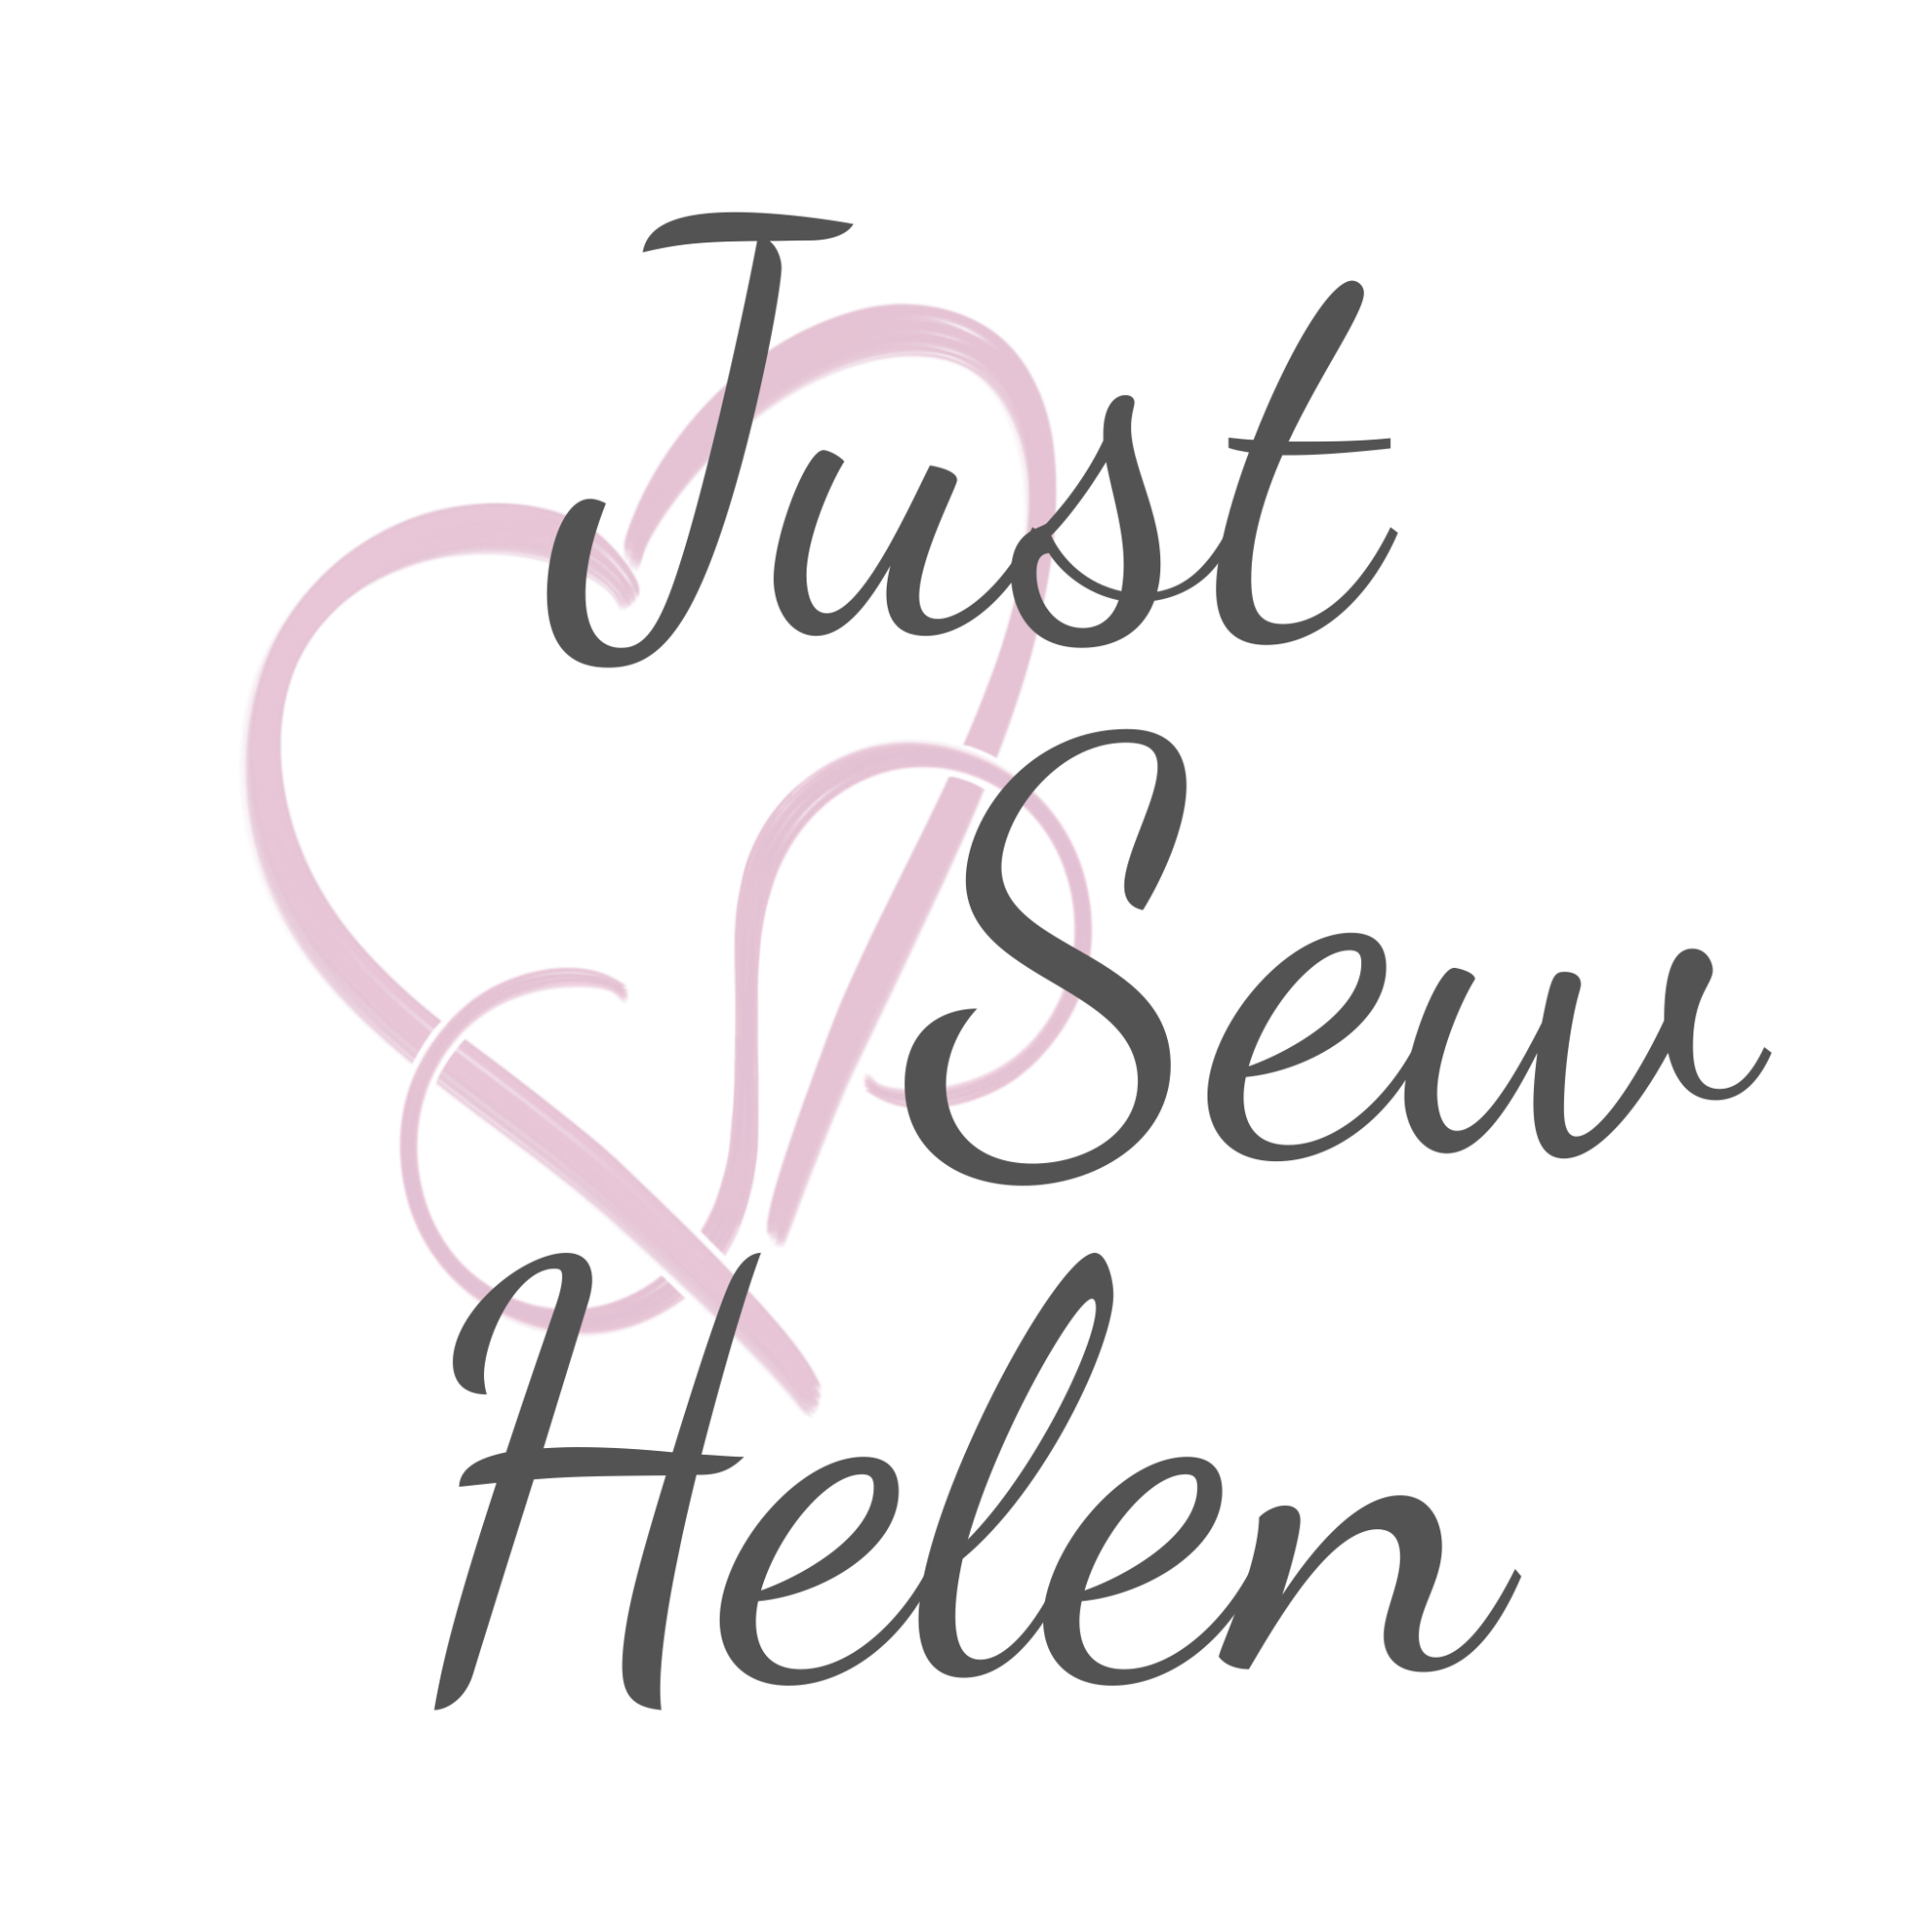 Logo image of a pink heart and pink infinity symbol intertwined and overlain with the business name Just Sew Helen